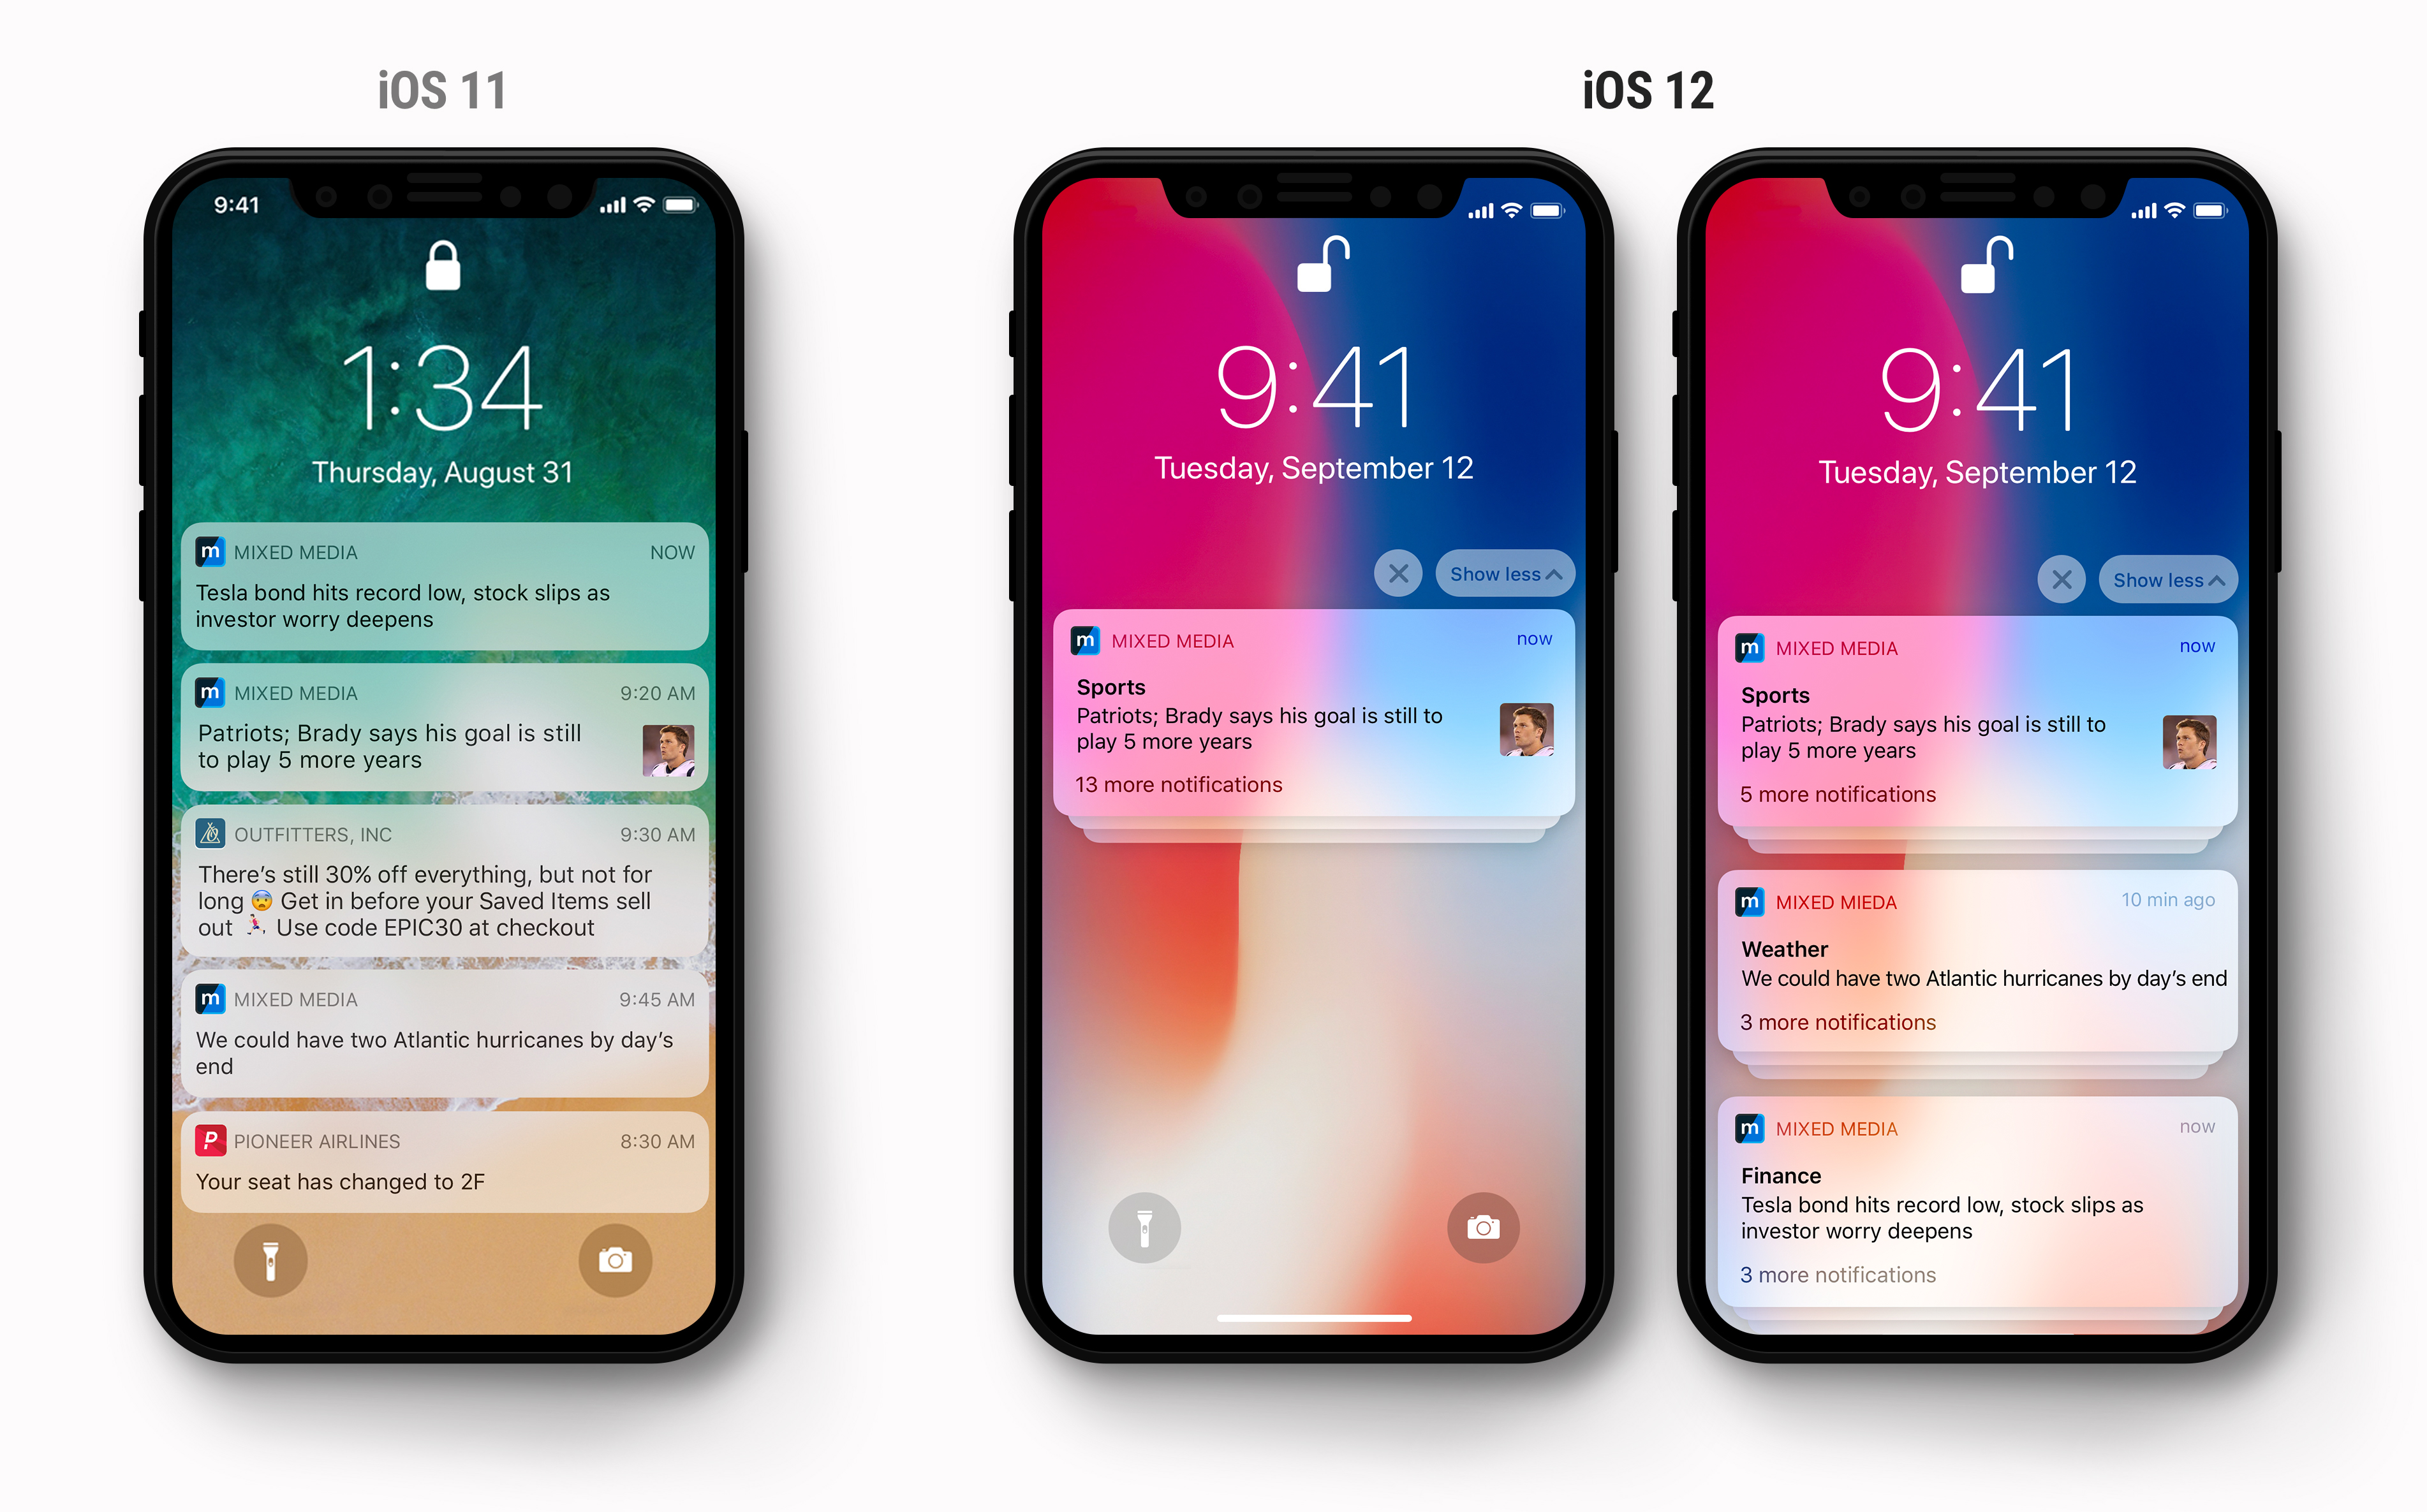 The display of notifications changes from iOS 11 to iOS 12